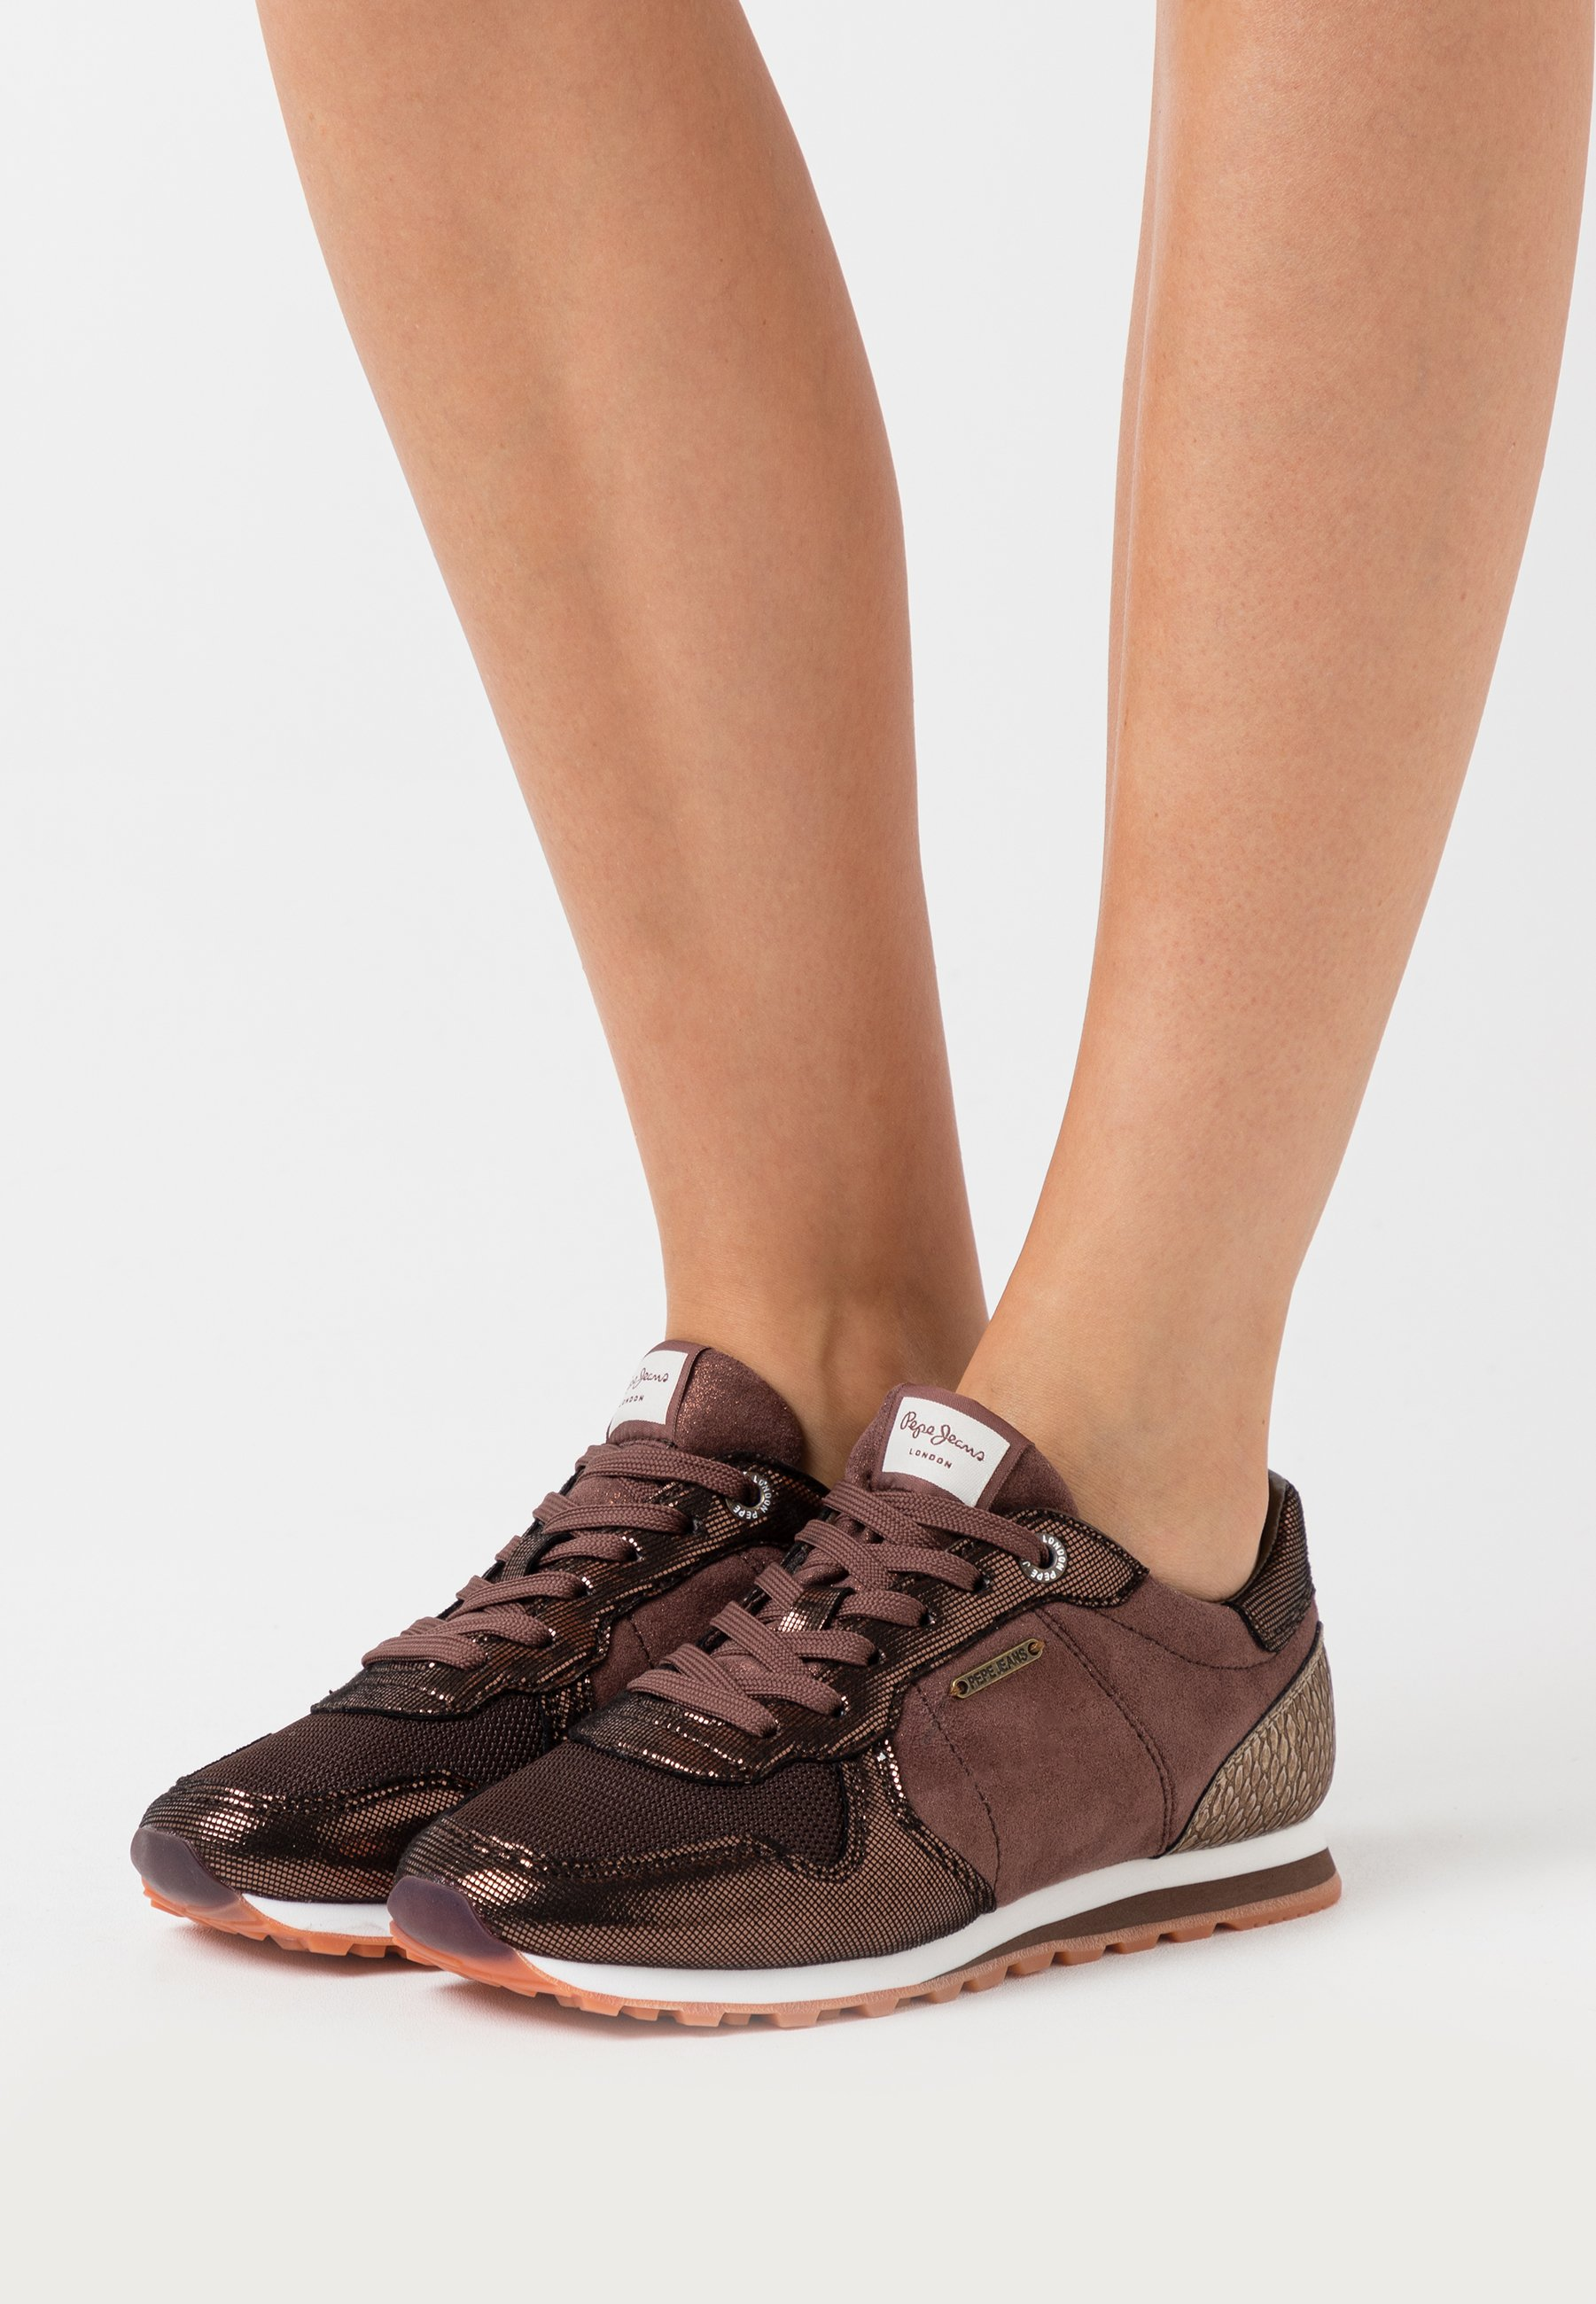 Best Seller Factory Price Women's Shoes Pepe Jeans VERONA TOP Trainers dark mocca BLiAcXAcK KGkmcbeuO